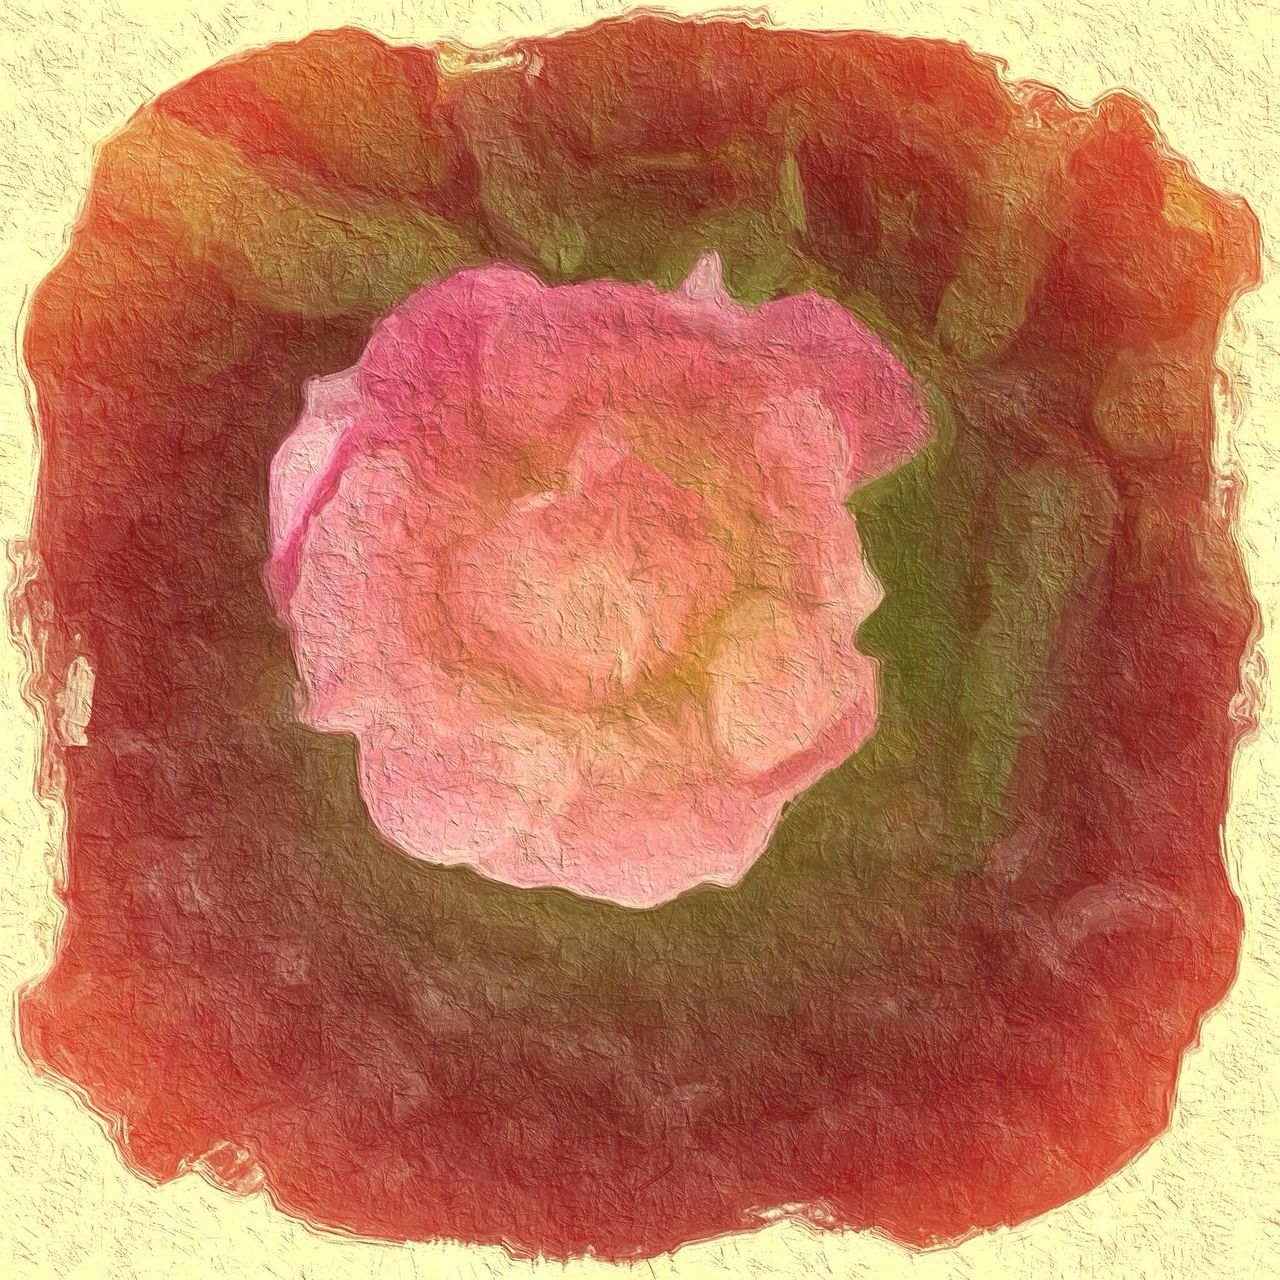 rock - object, textured, geology, no people, nature, paper, watercolor painting, close-up, flower, day, outdoors